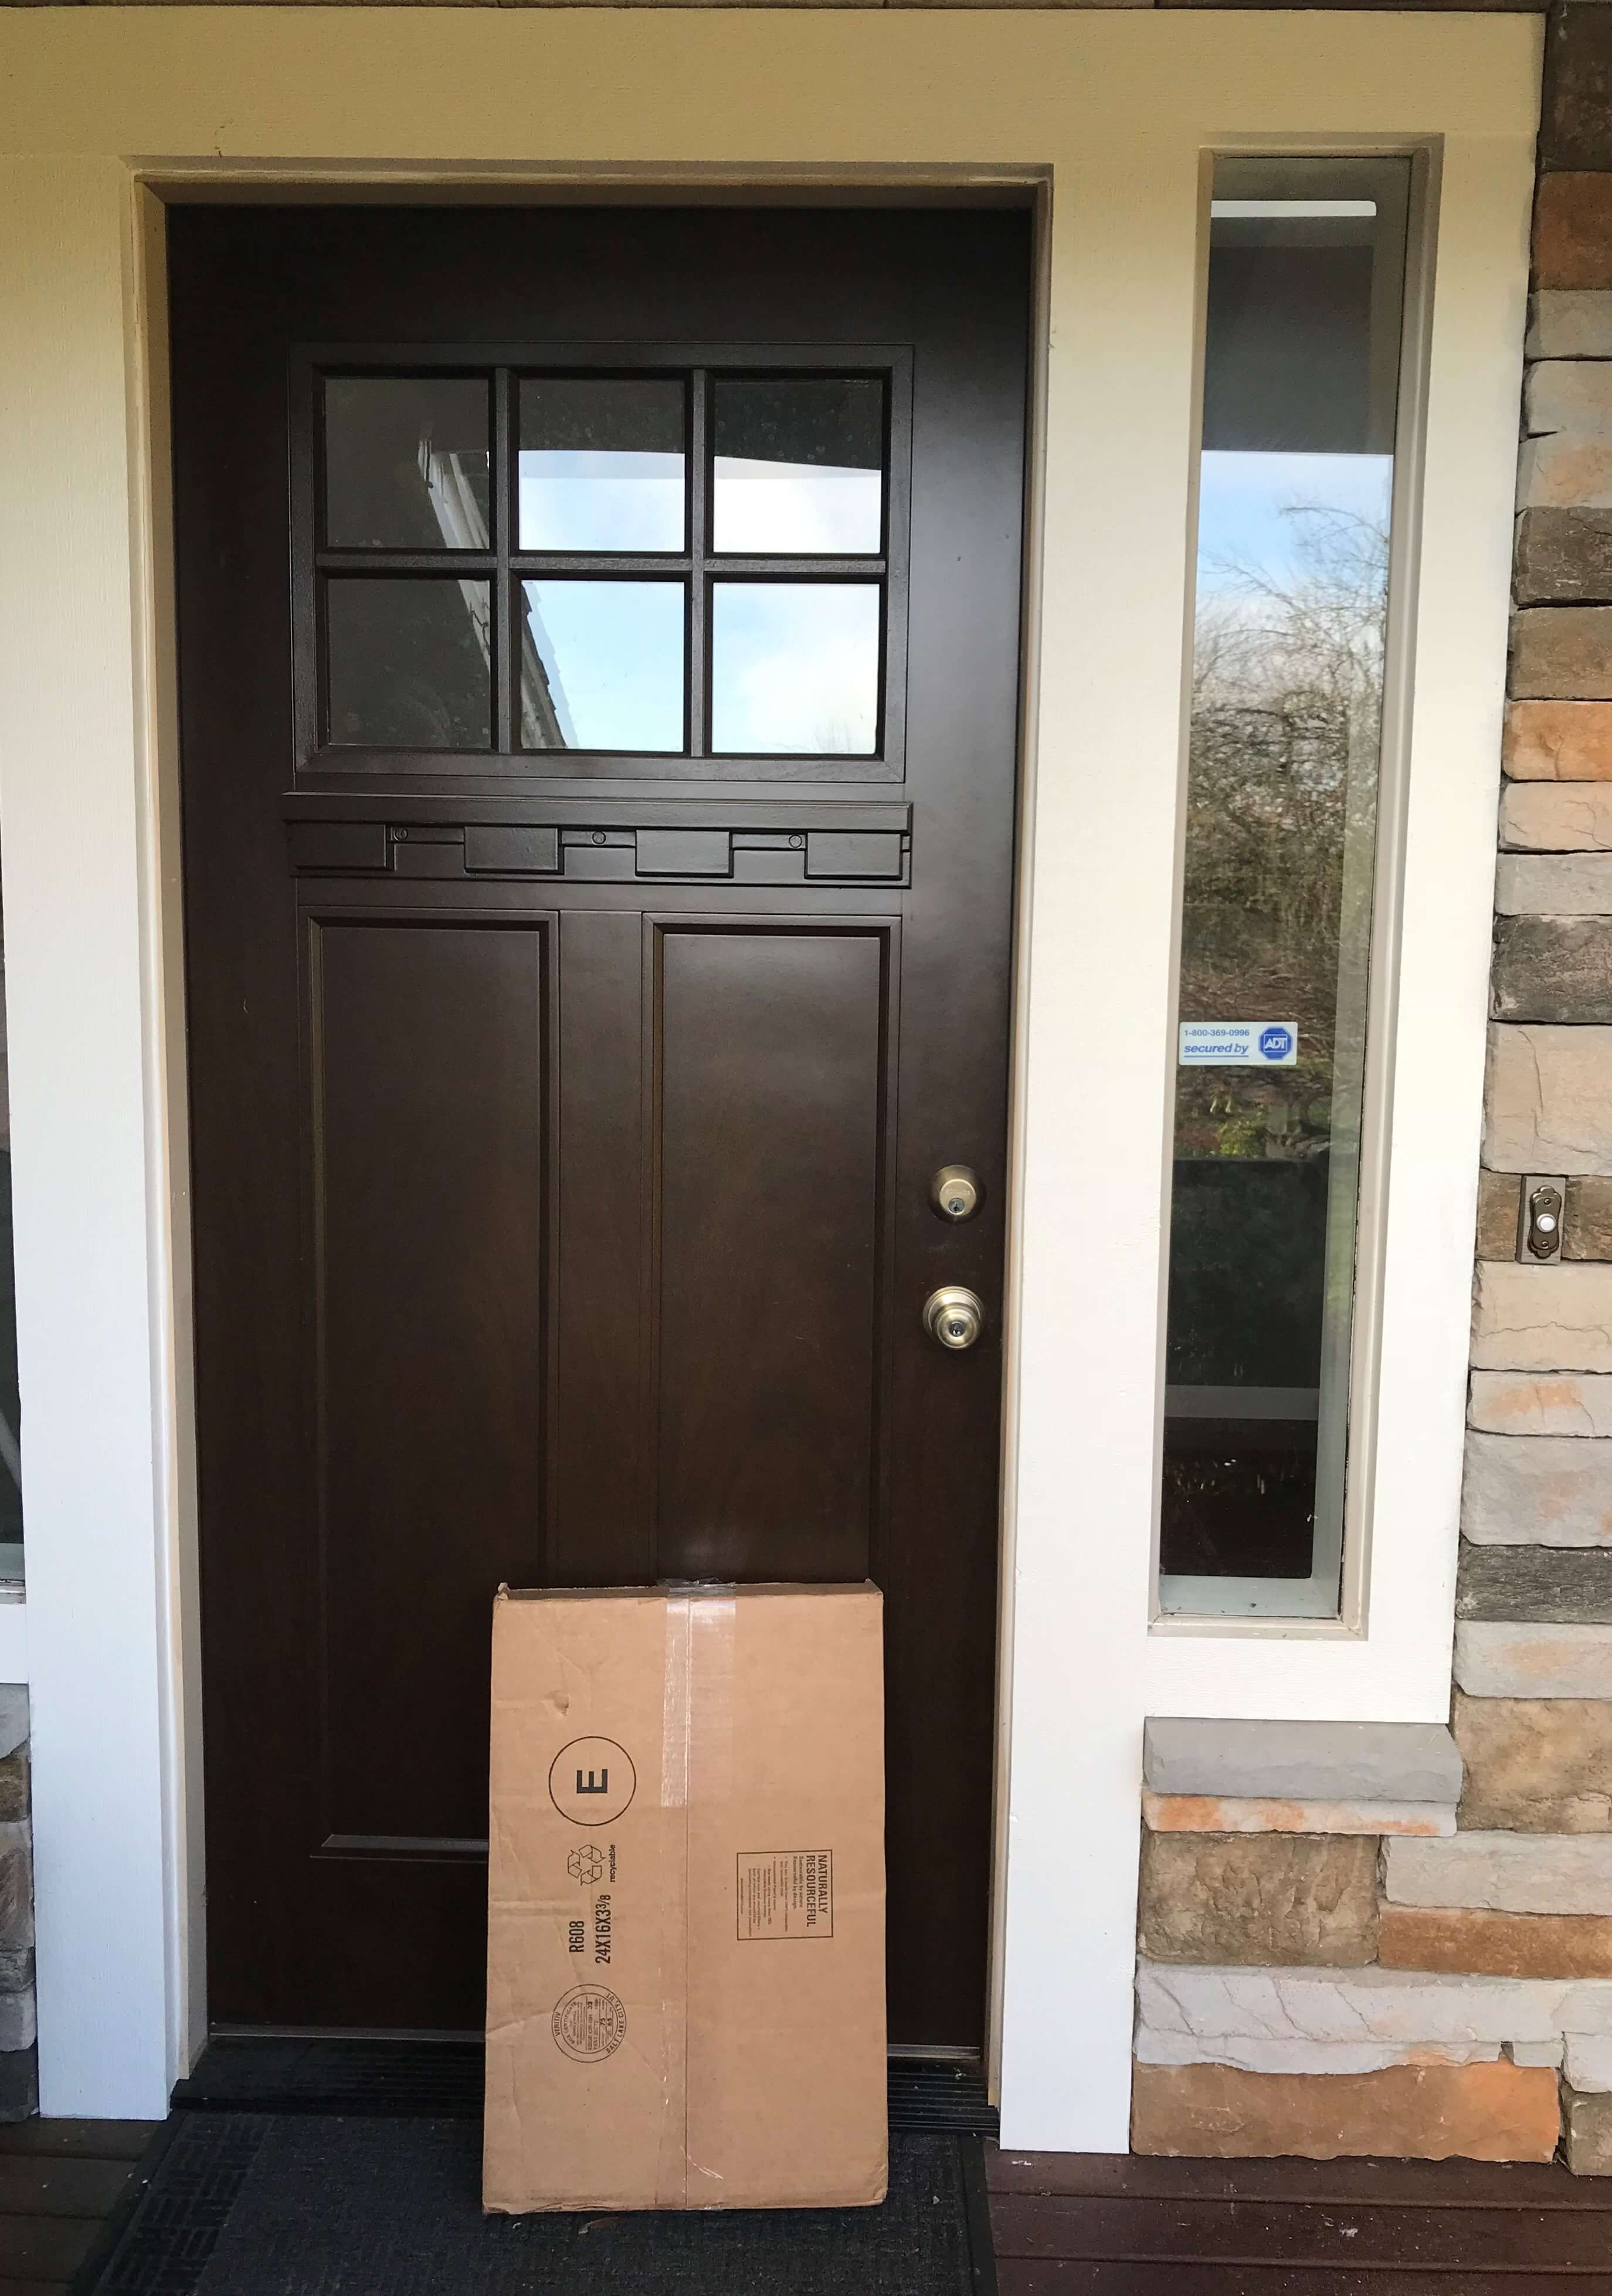 How to avoid holiday package theft in Boynton Beach, FL